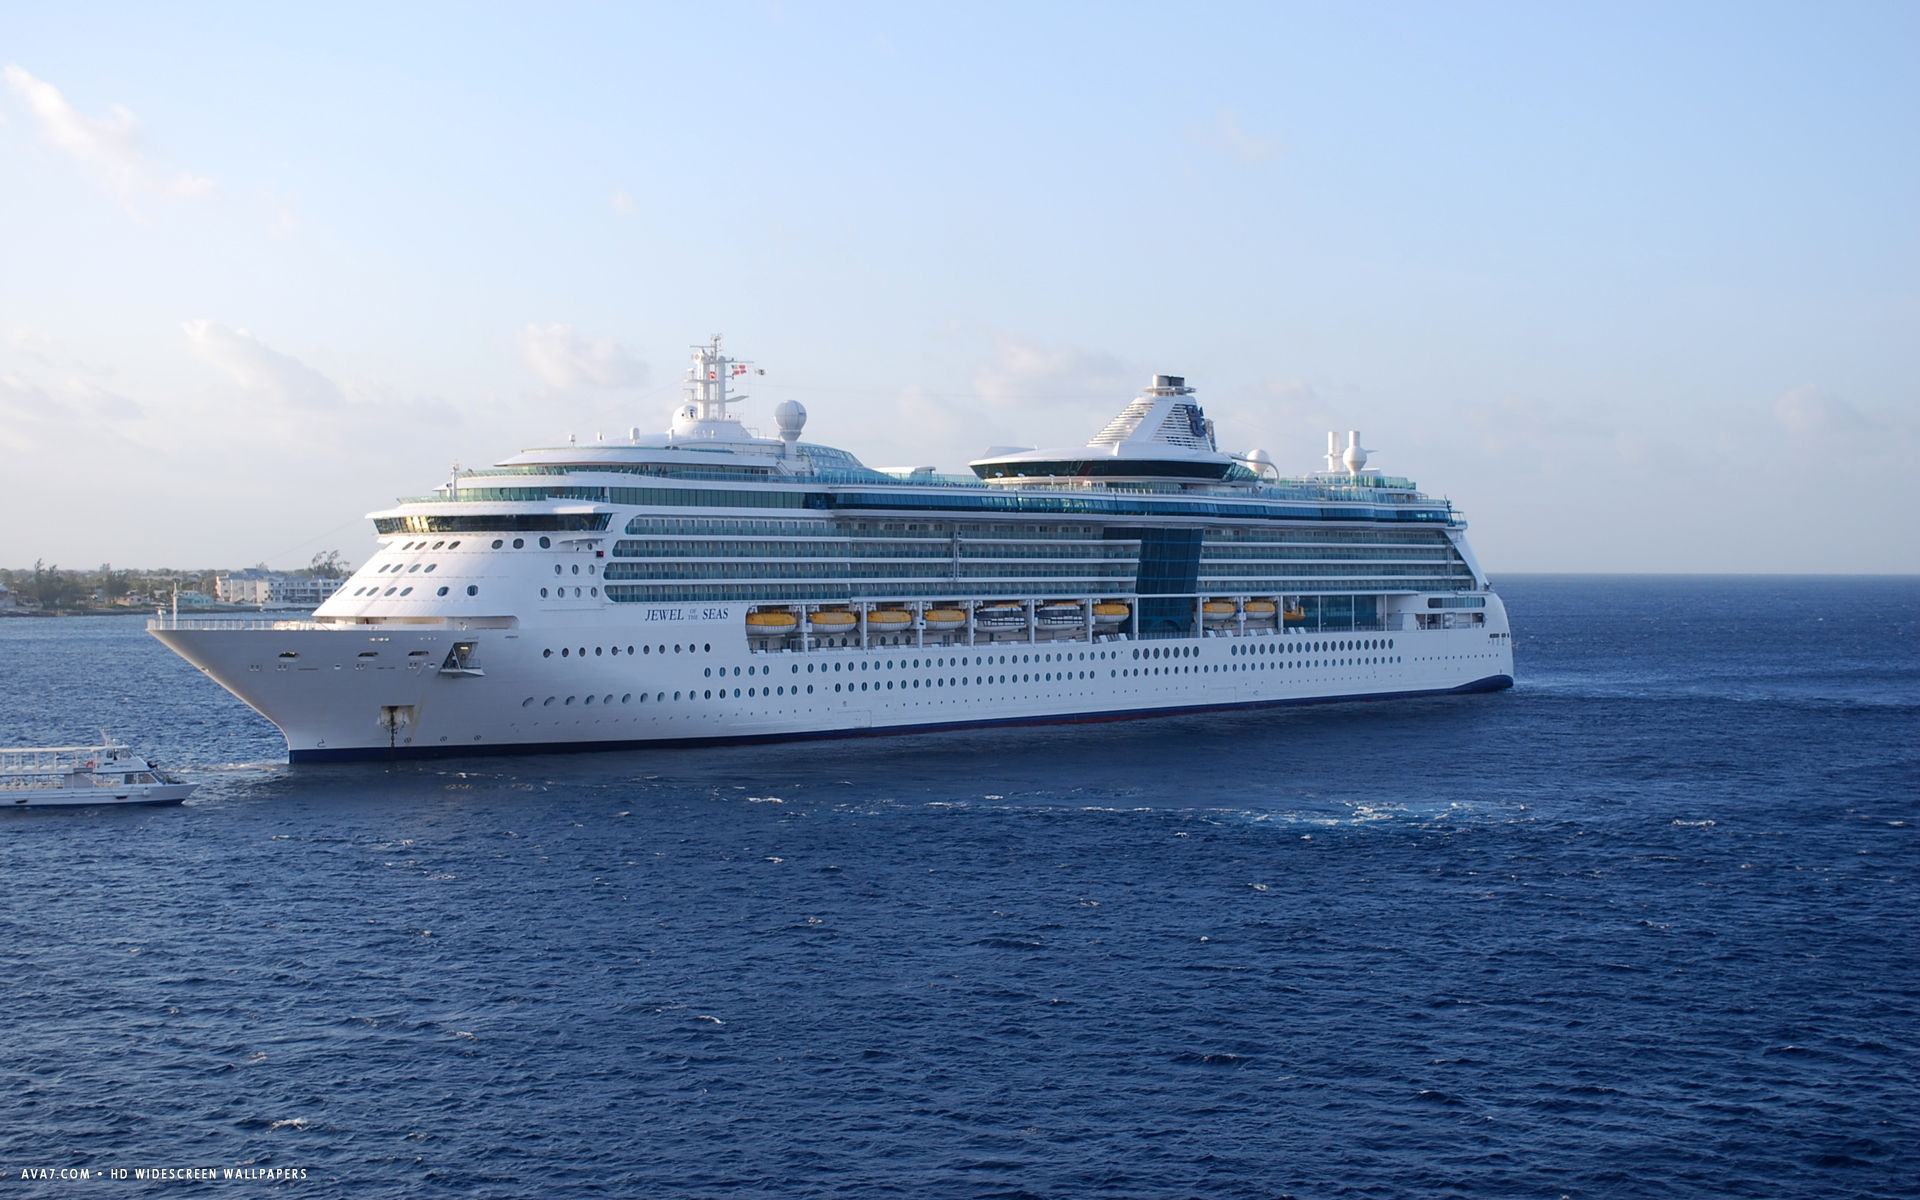 jewel of the seas cruise ship hd widescreen wallpaper